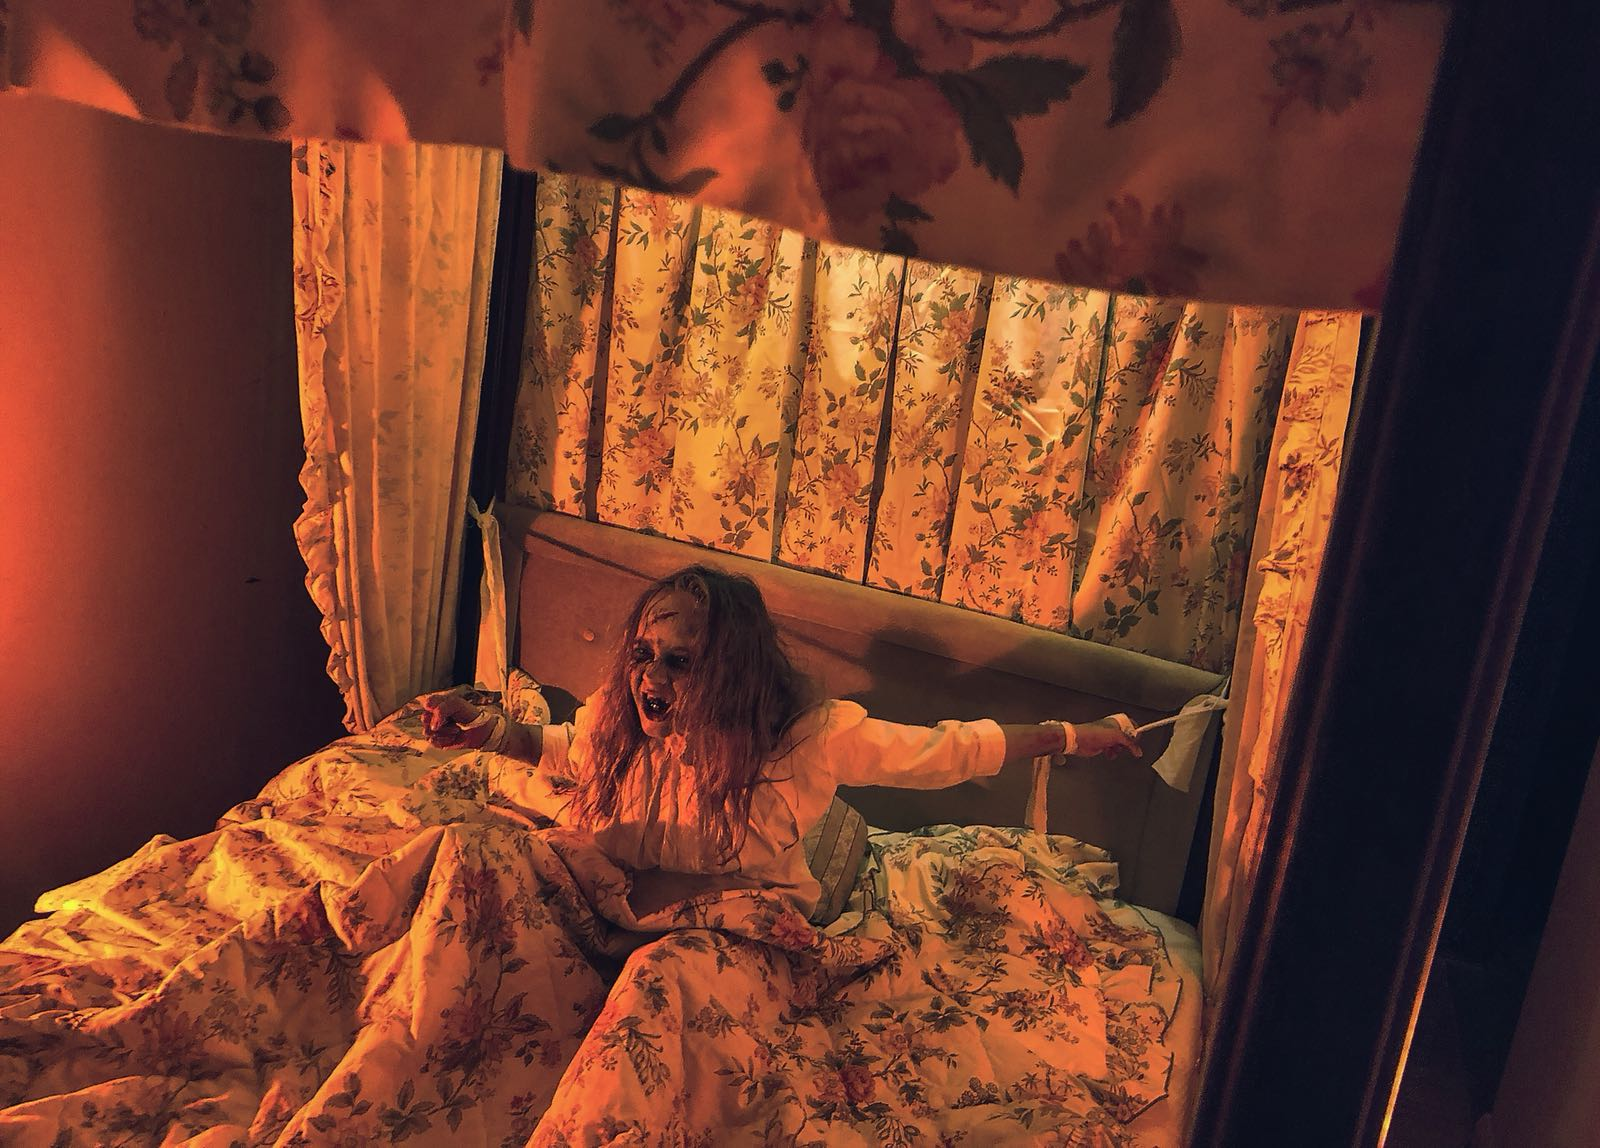 The Exorcism room at House of Horrors Brentwood